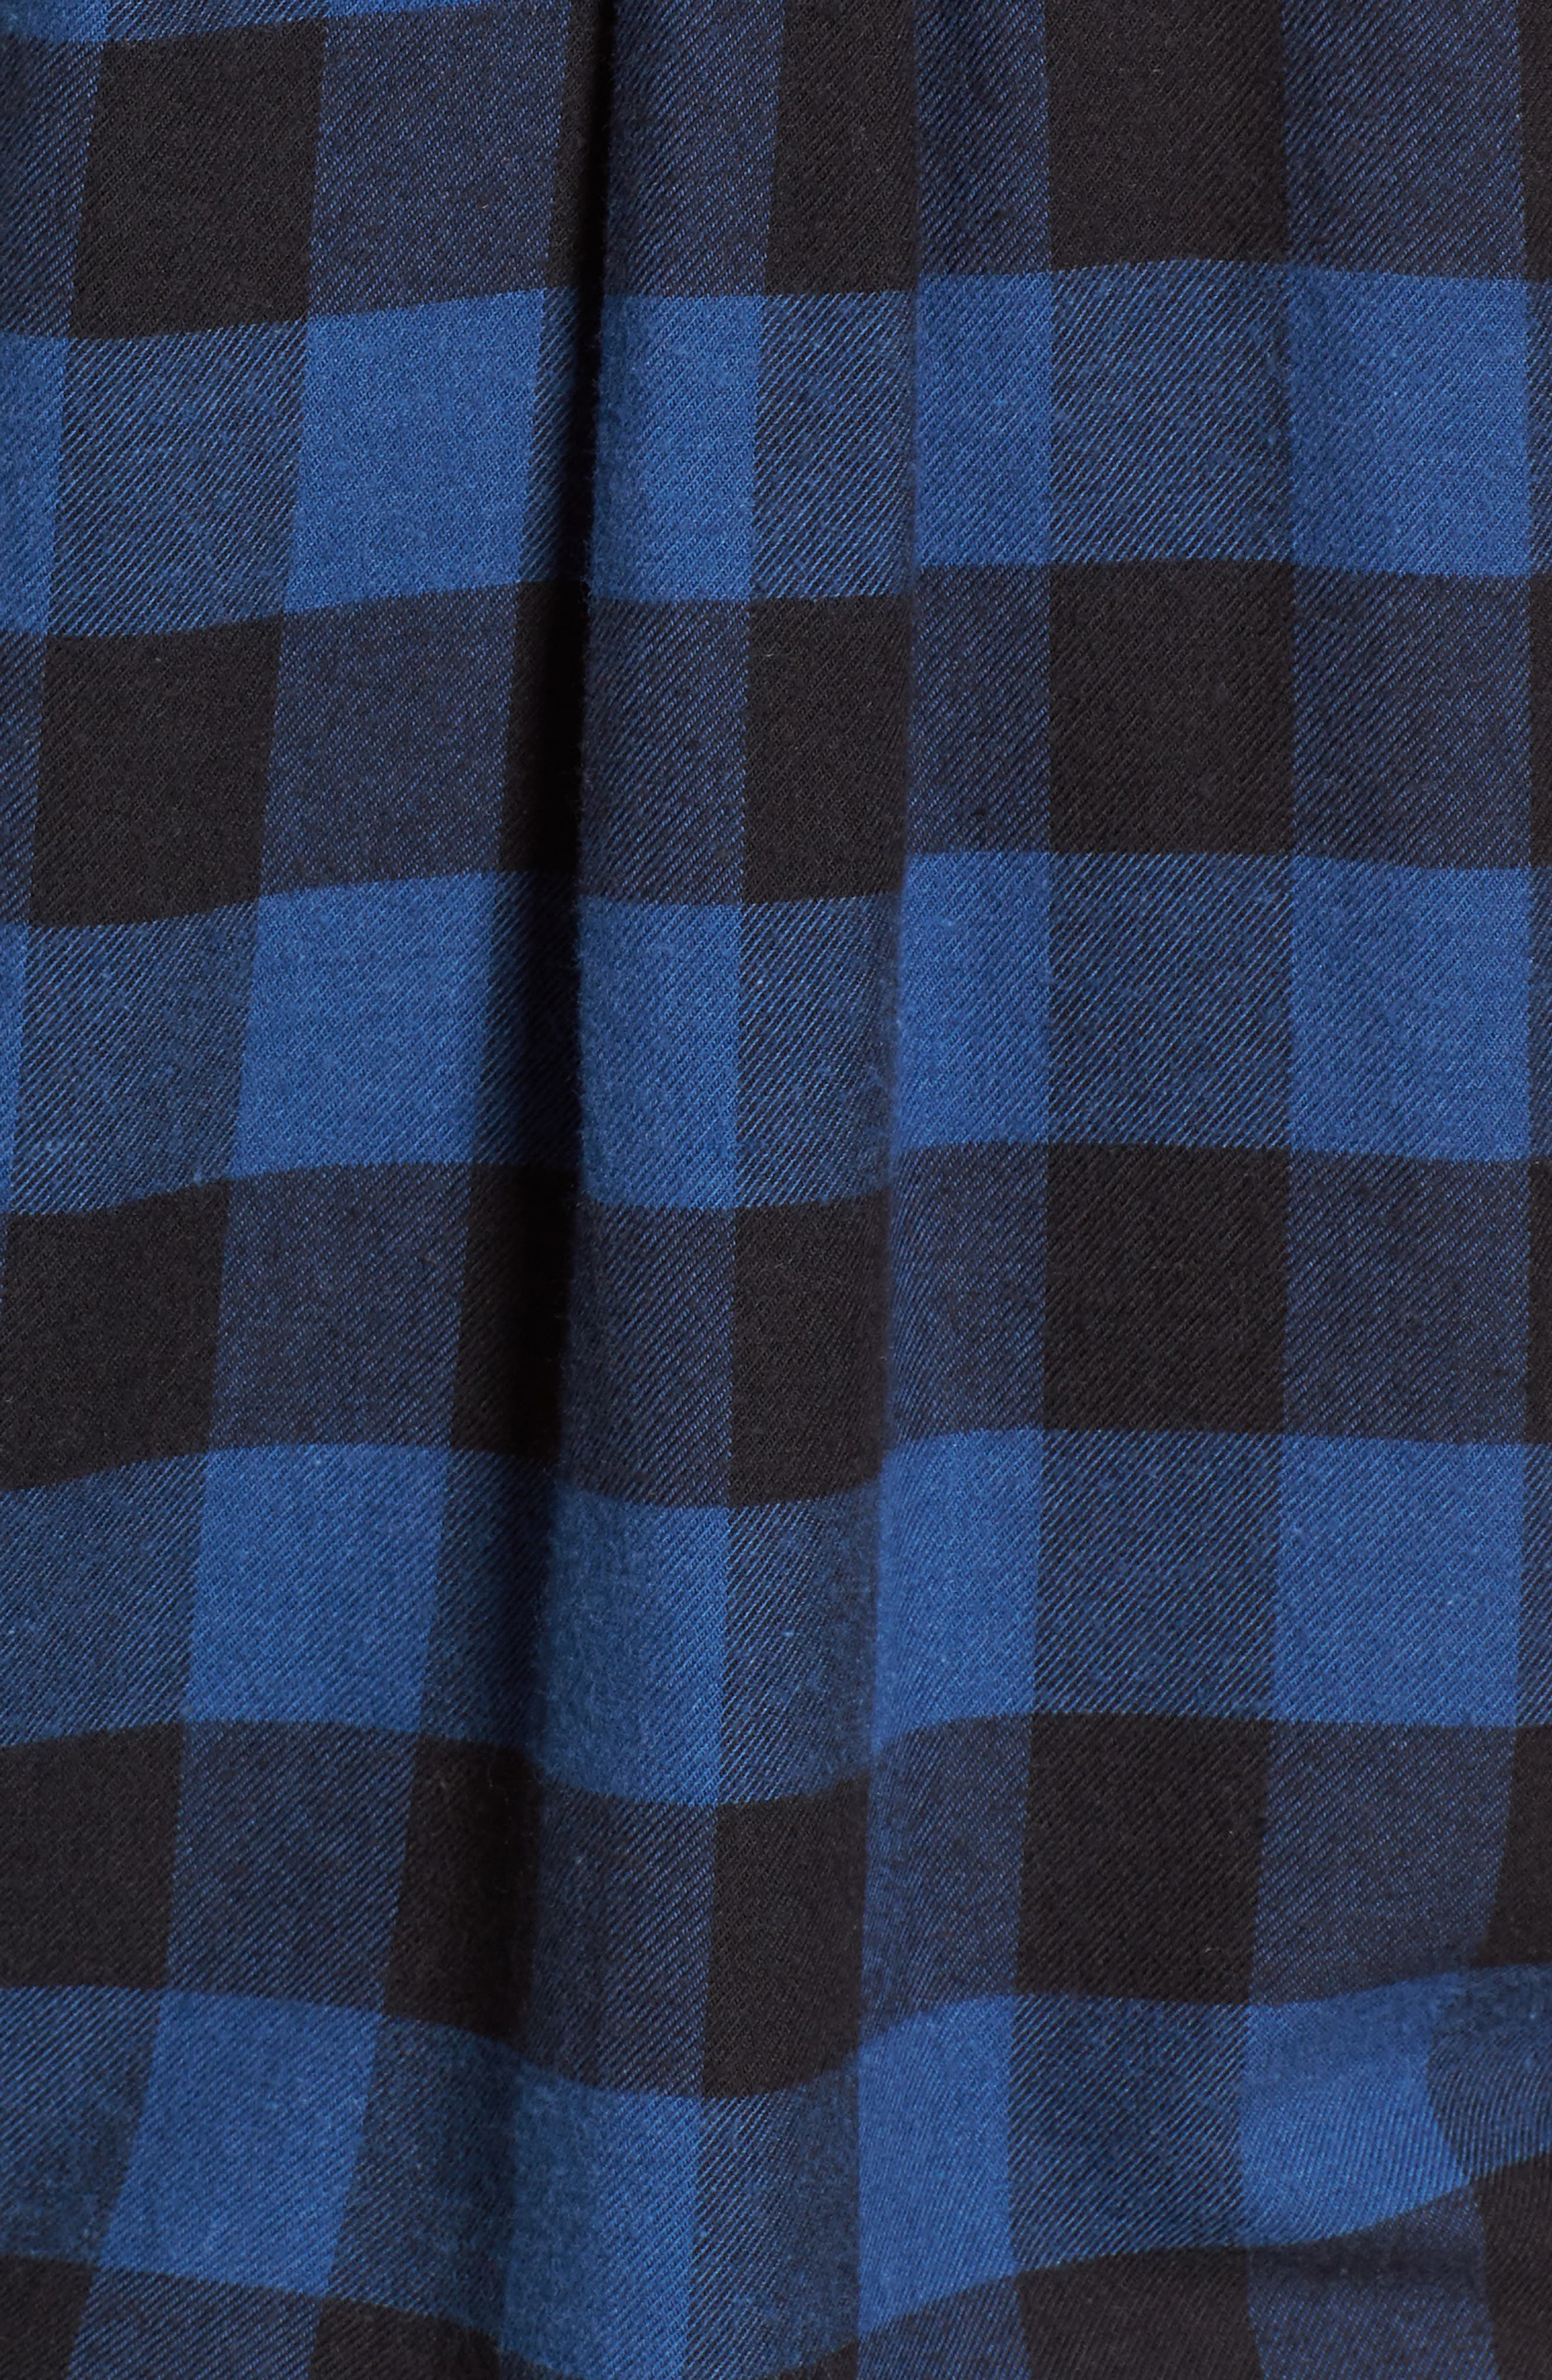 Rex Studded Flannel Shirt,                             Alternate thumbnail 6, color,                             Blue/ Black Check